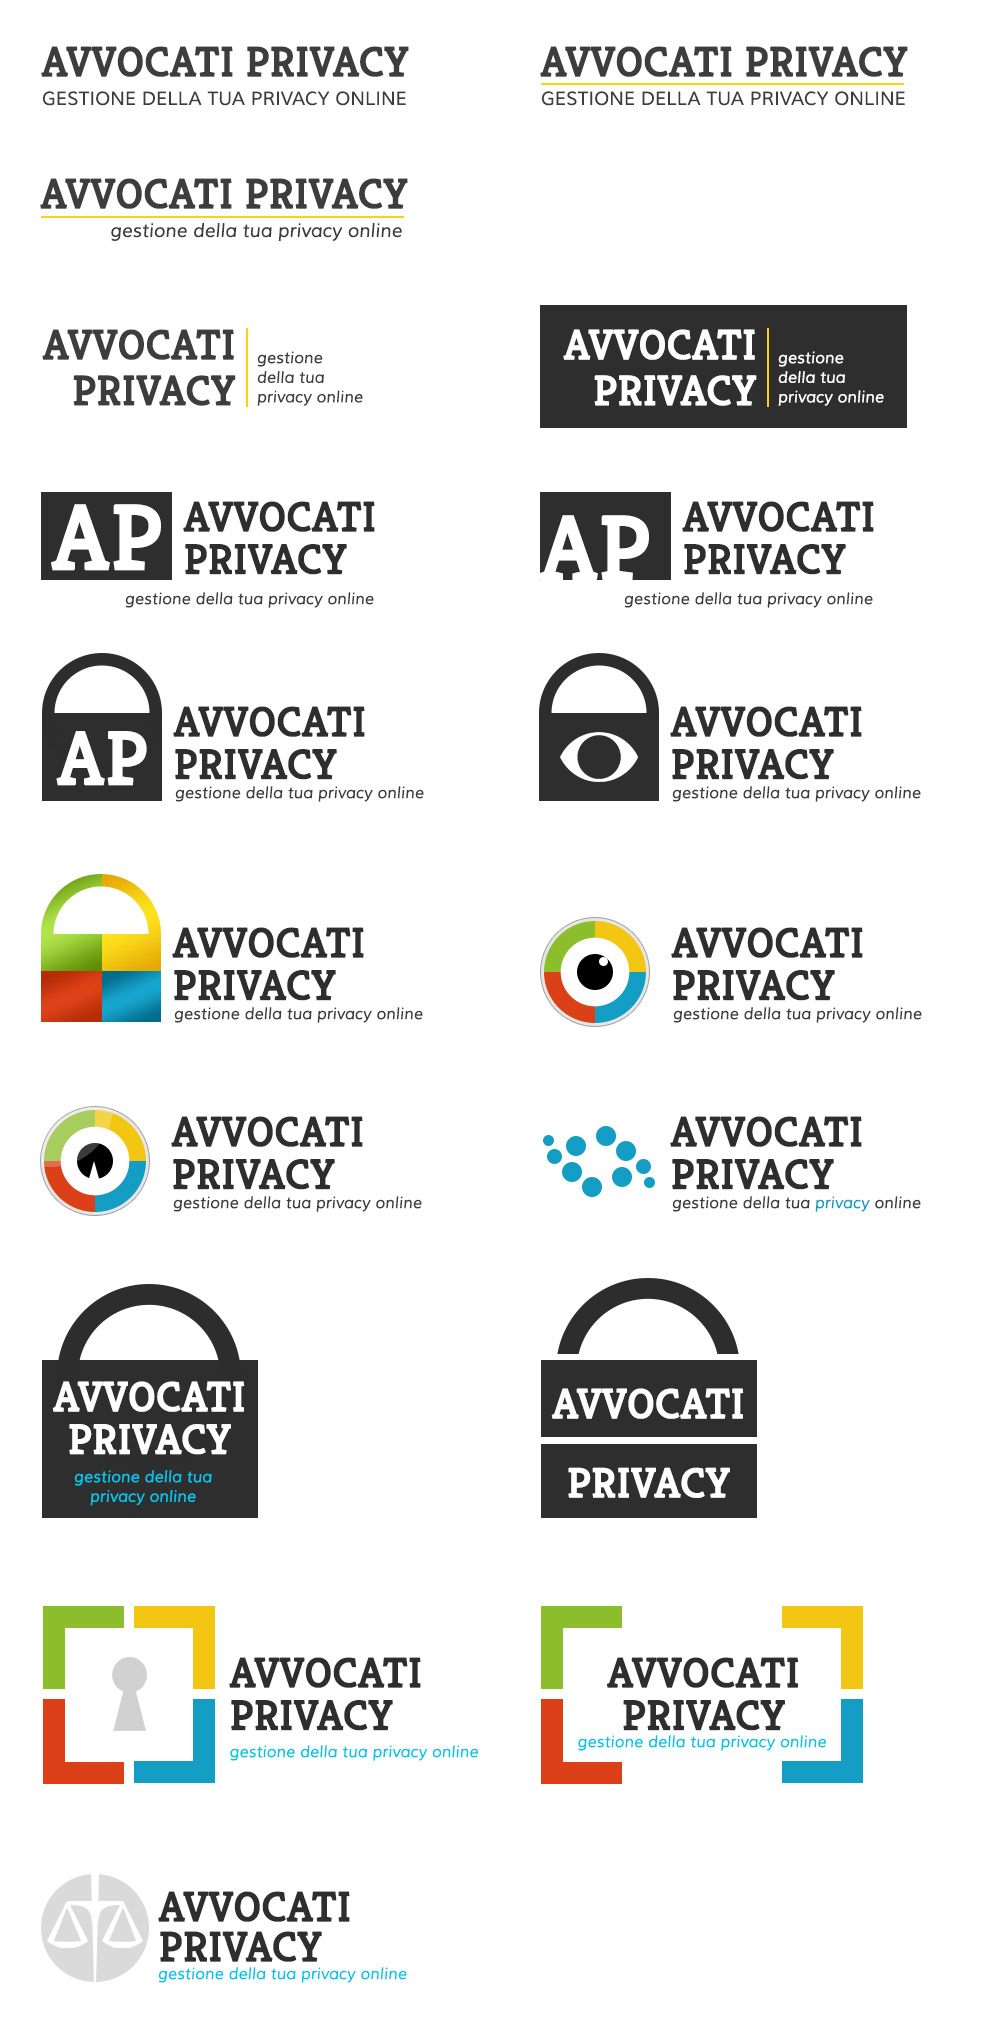 Logo design inspiration for an online privacy company